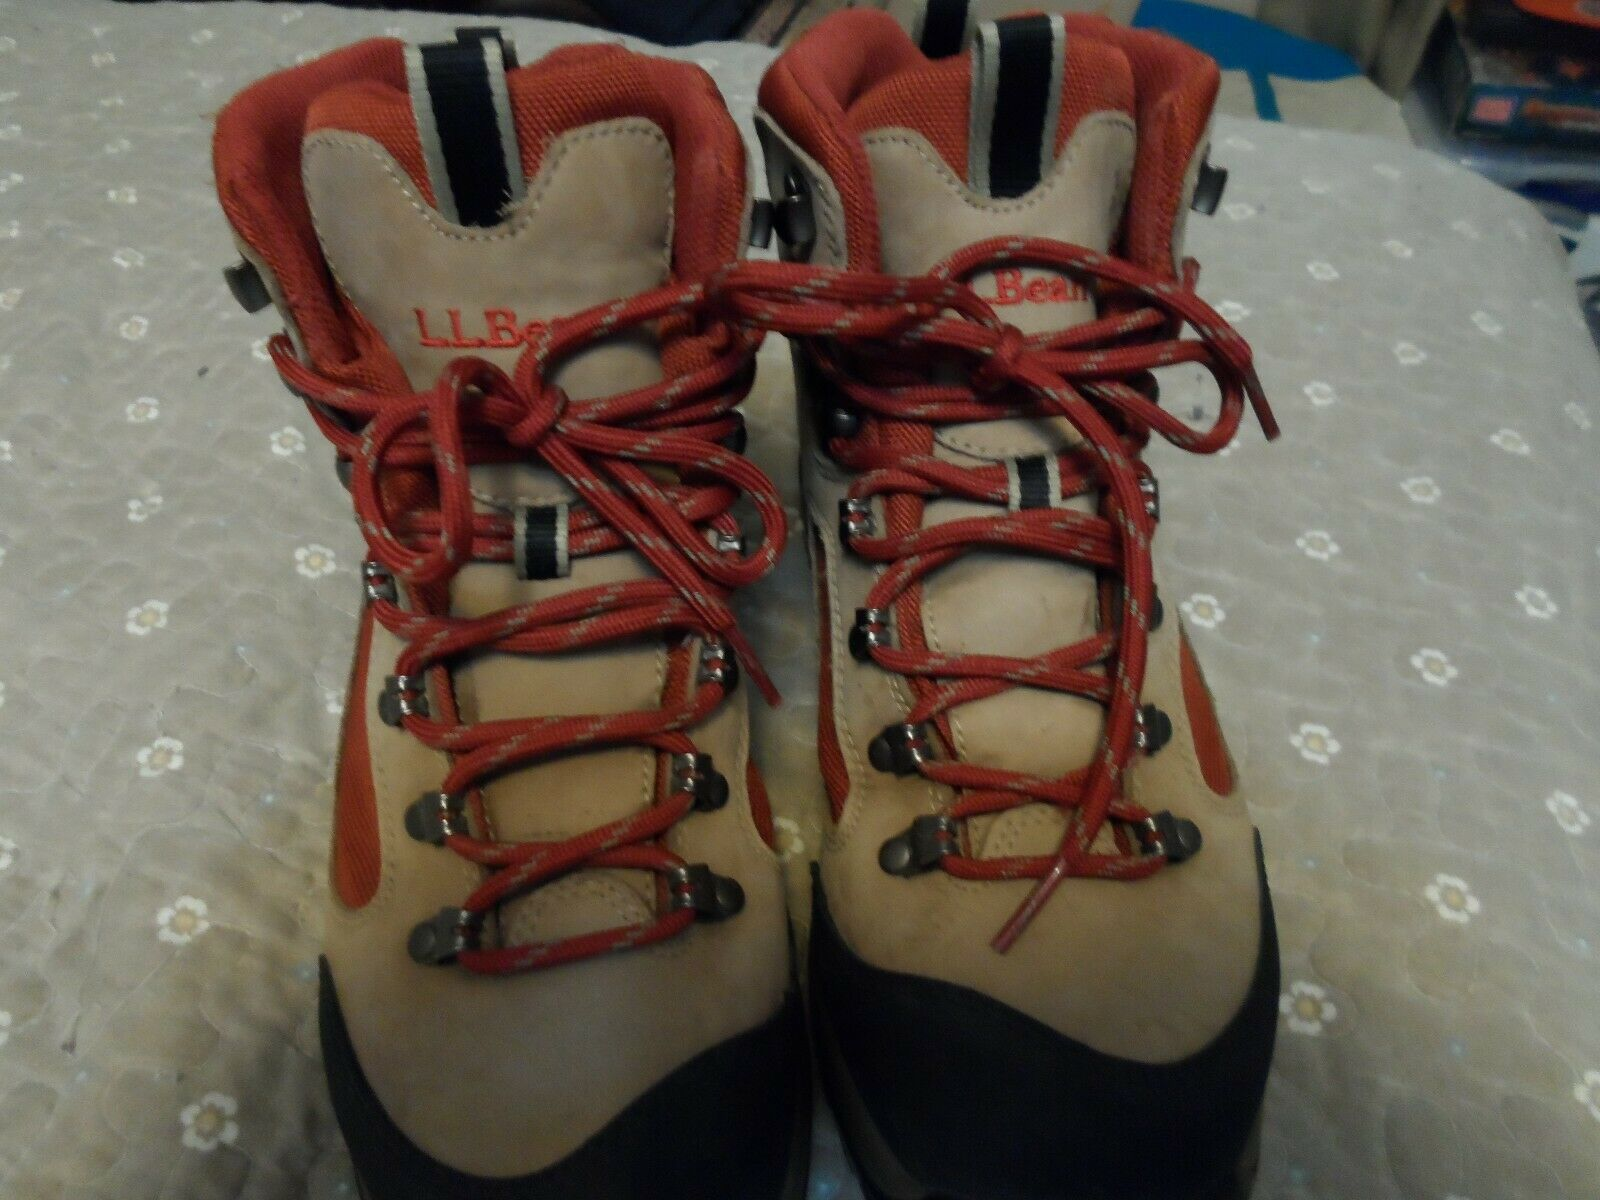 LL Bean  Women's Goretex Hiking Boots Size 8  discount promotions